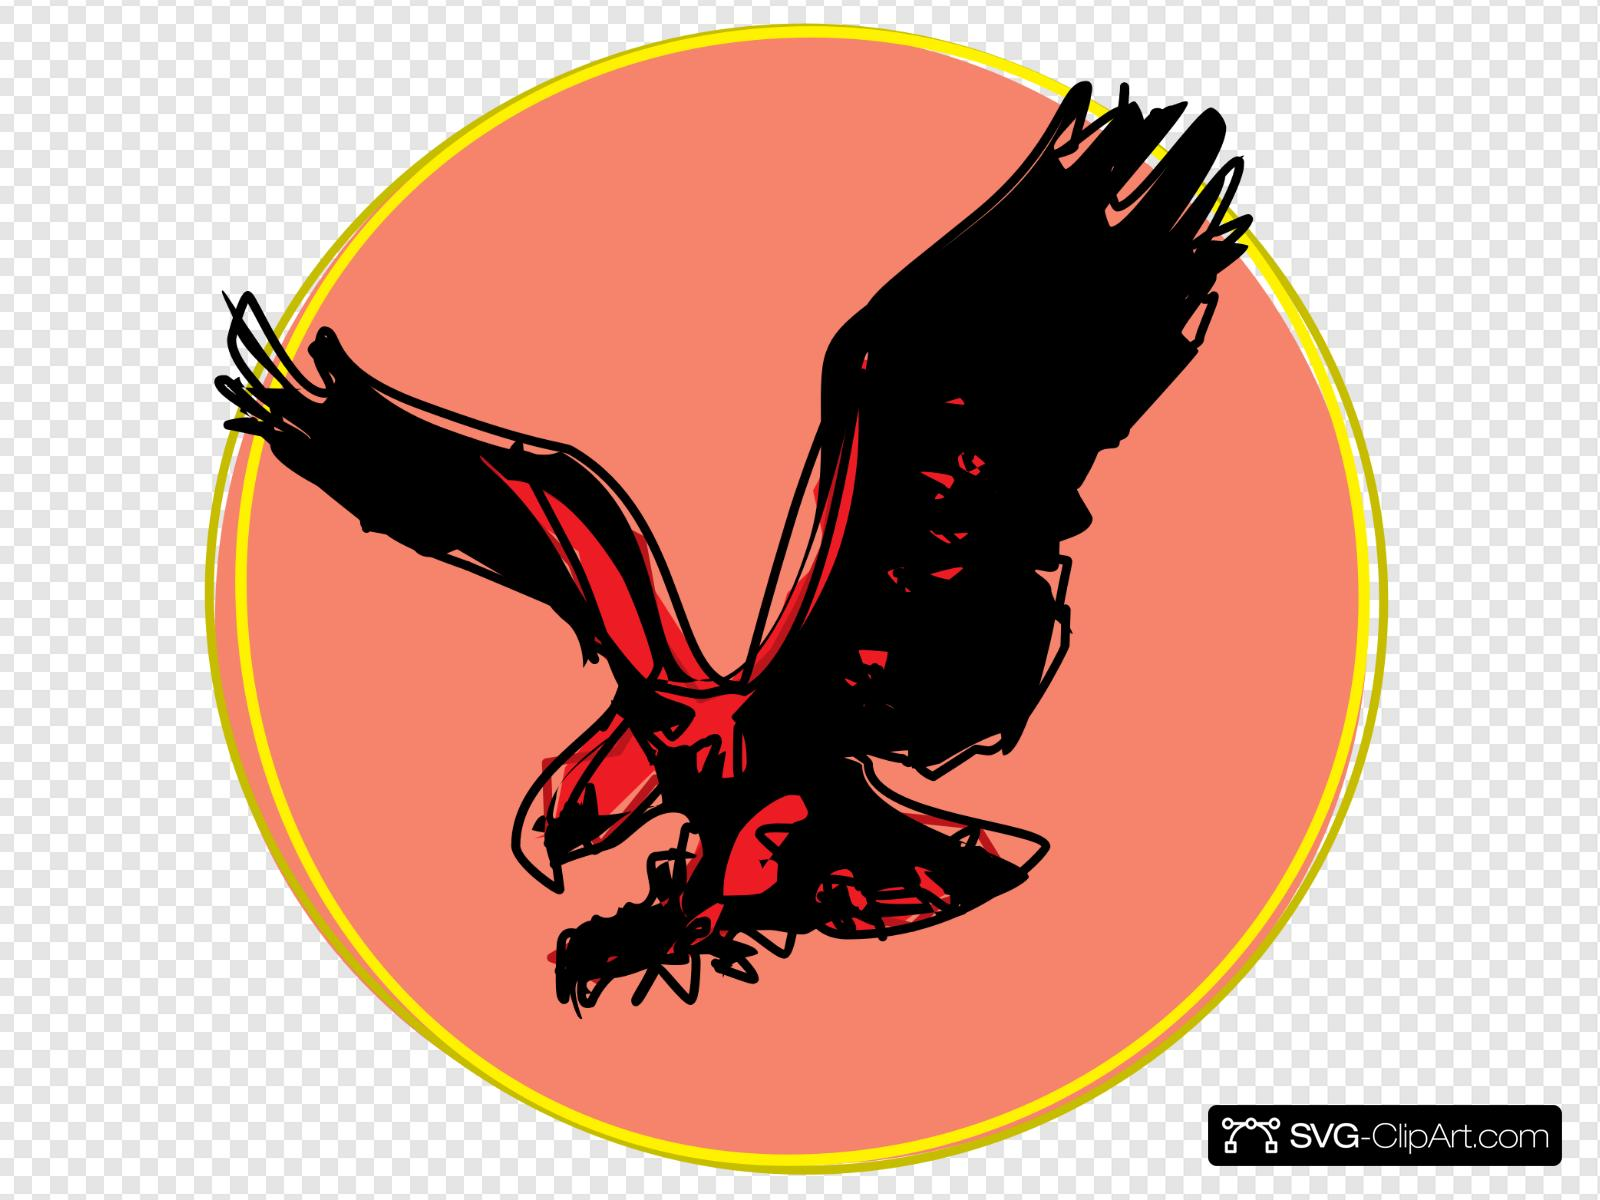 Eagle Scribble With Sun Clip art, Icon and SVG.